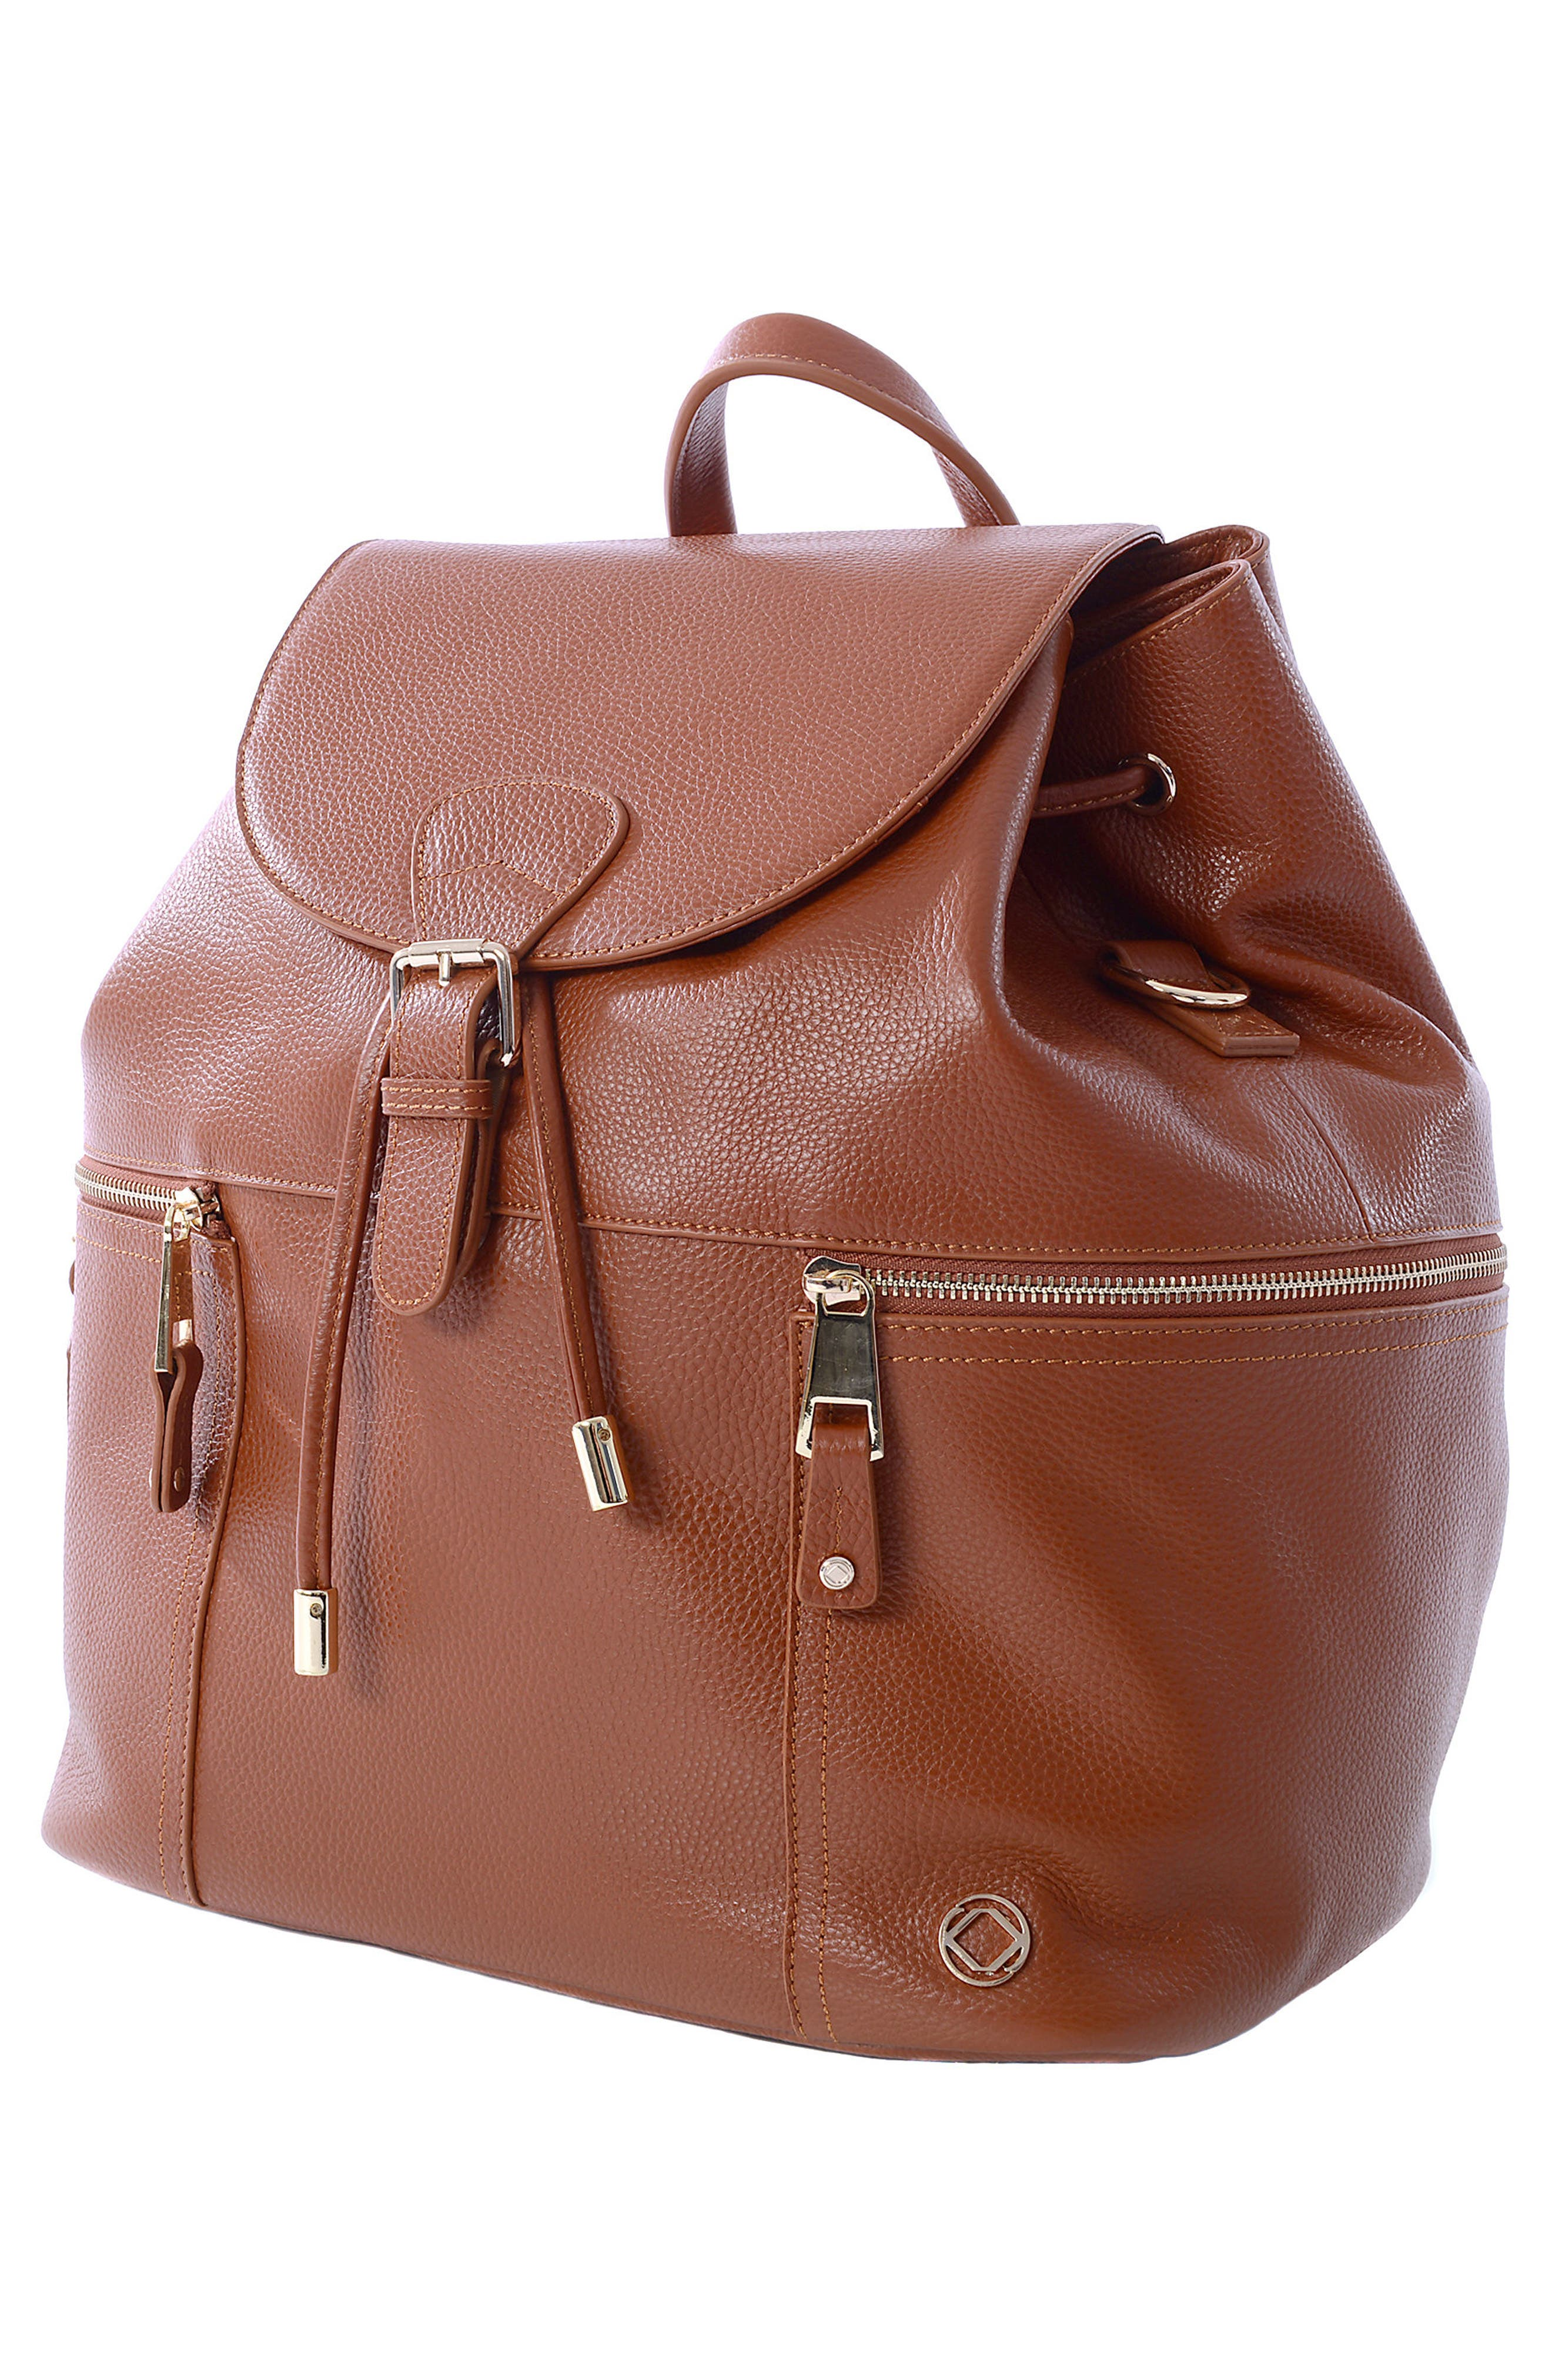 Thor Leather Backpack,                             Alternate thumbnail 7, color,                             Tan With Light Gold Hardware